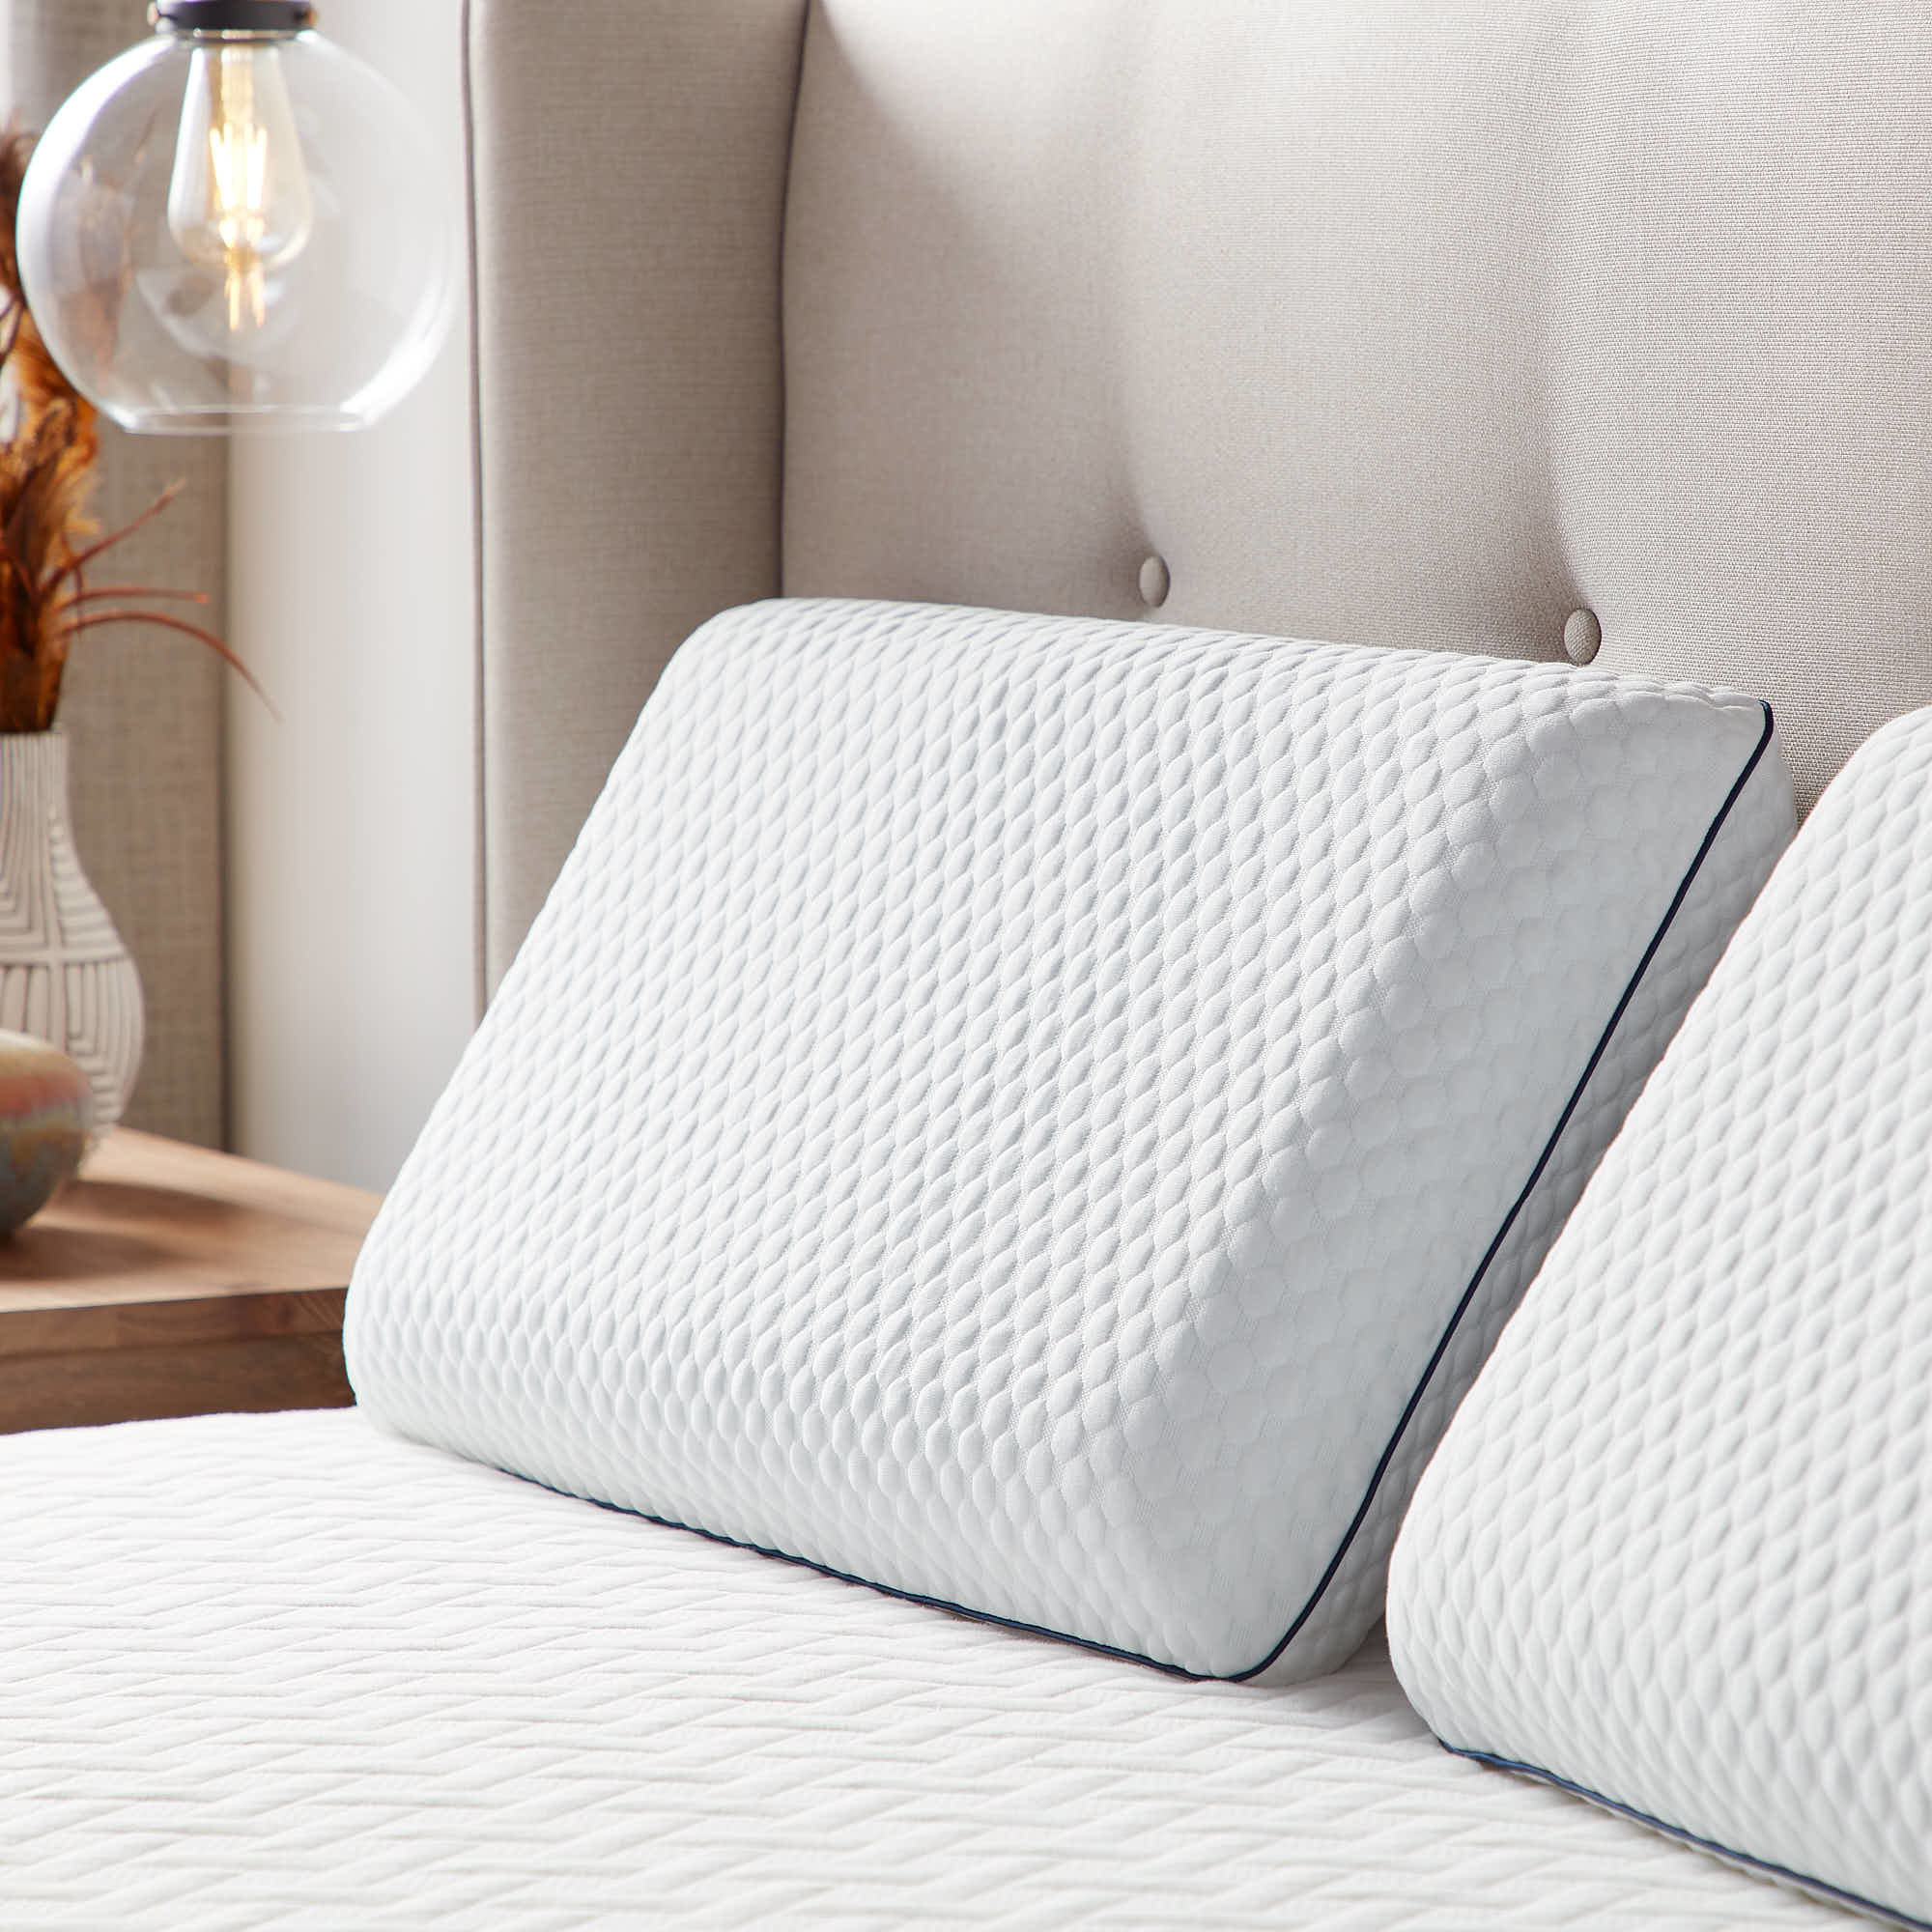 a gel foam memory pillow displayed on a bed